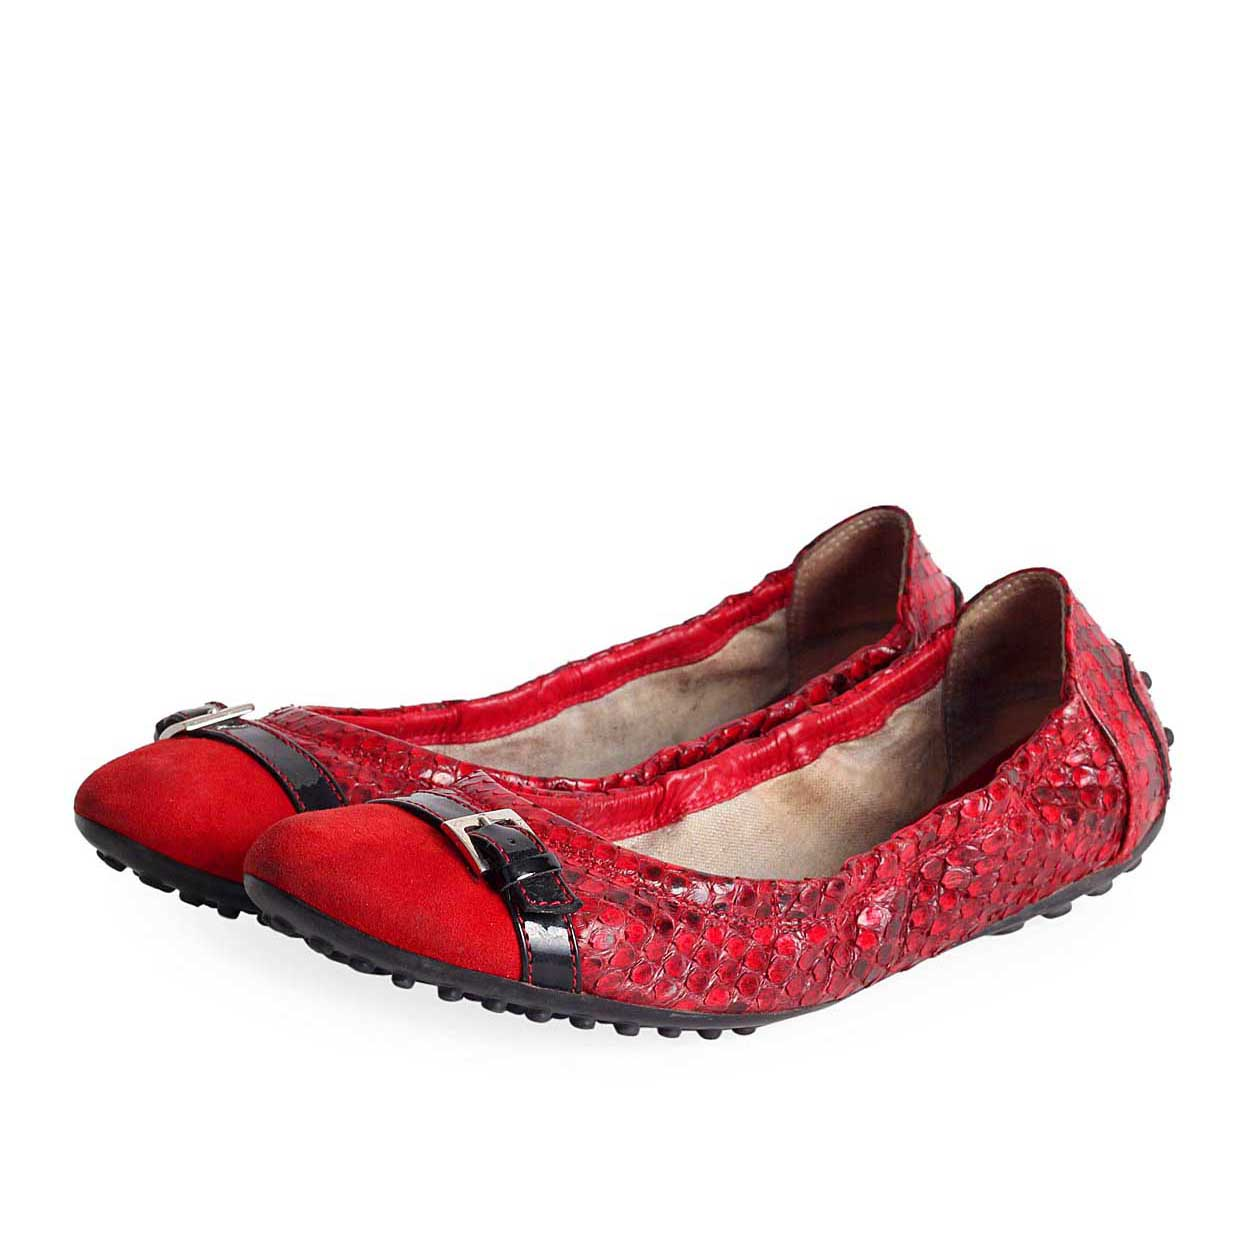 70bc5f2276820 Designer Shoes - Luxity